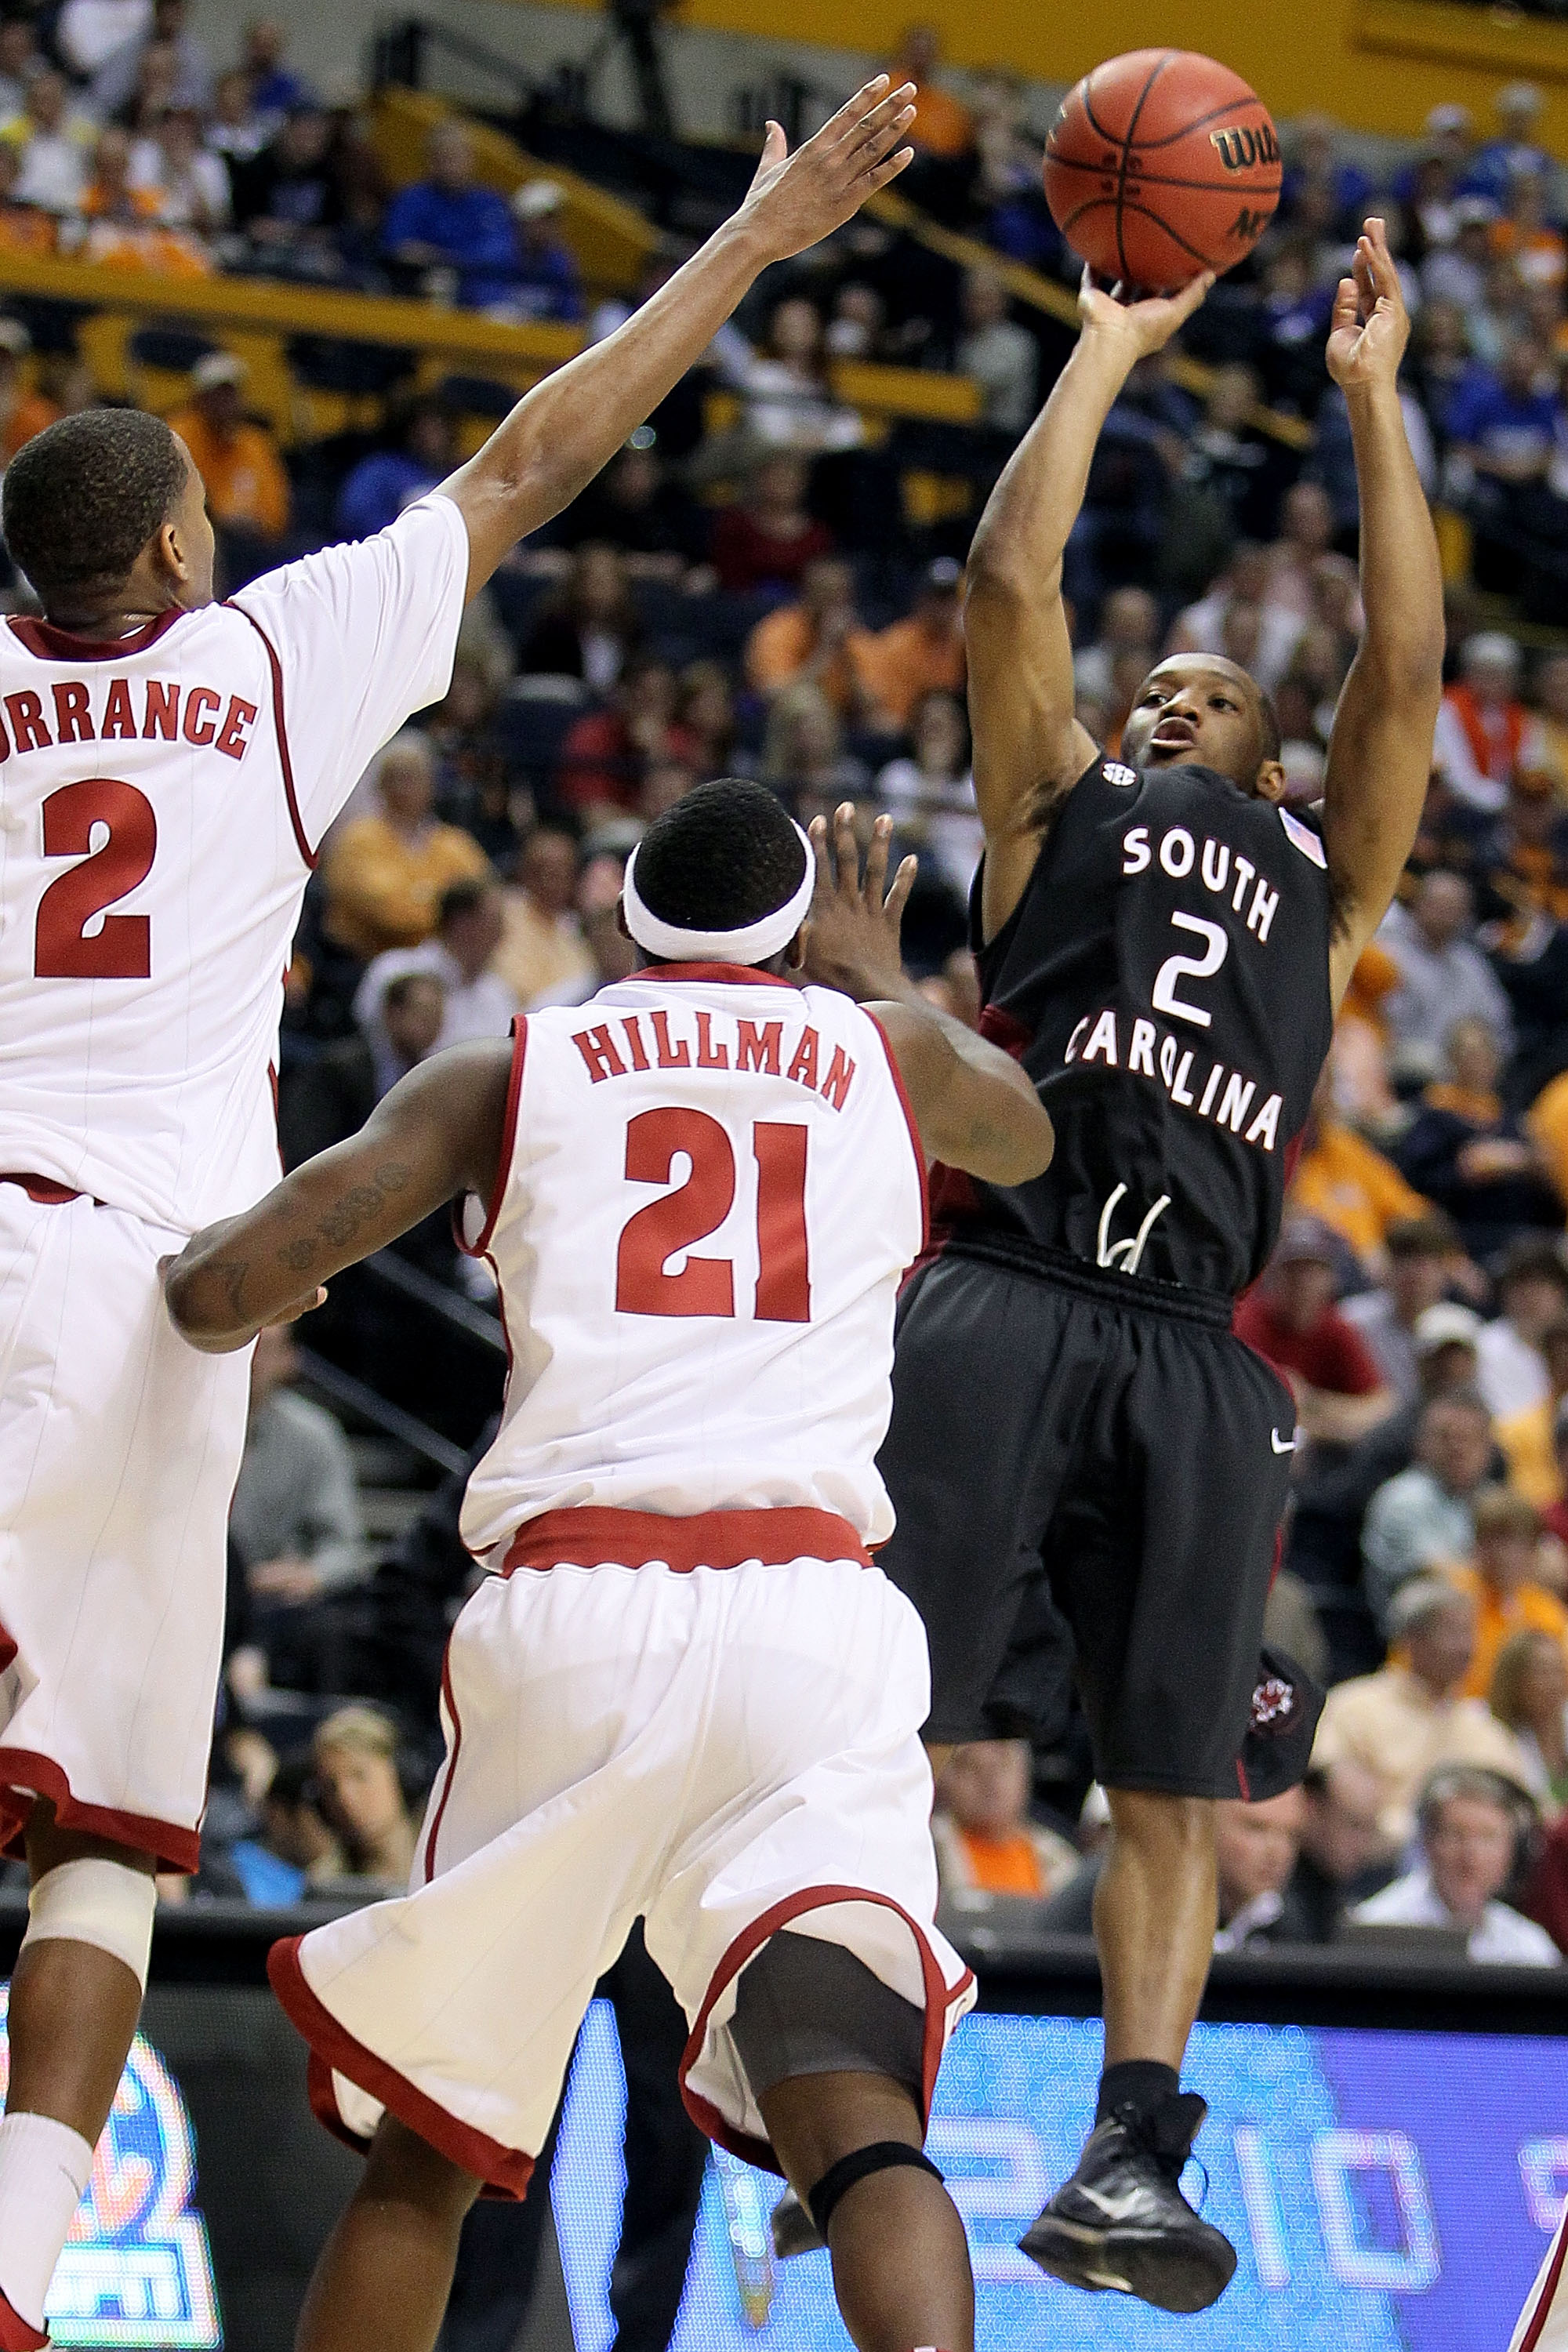 NASHVILLE, TN - MARCH 11:  Devan Downey #2 of the South Carolina attempts a shot in the second half against Mikhail Torrance #2 and Senario Hillman #21 of the Alabama Crimson Tide Gamecocks during the first round of the SEC Men's Basketball Tournament at